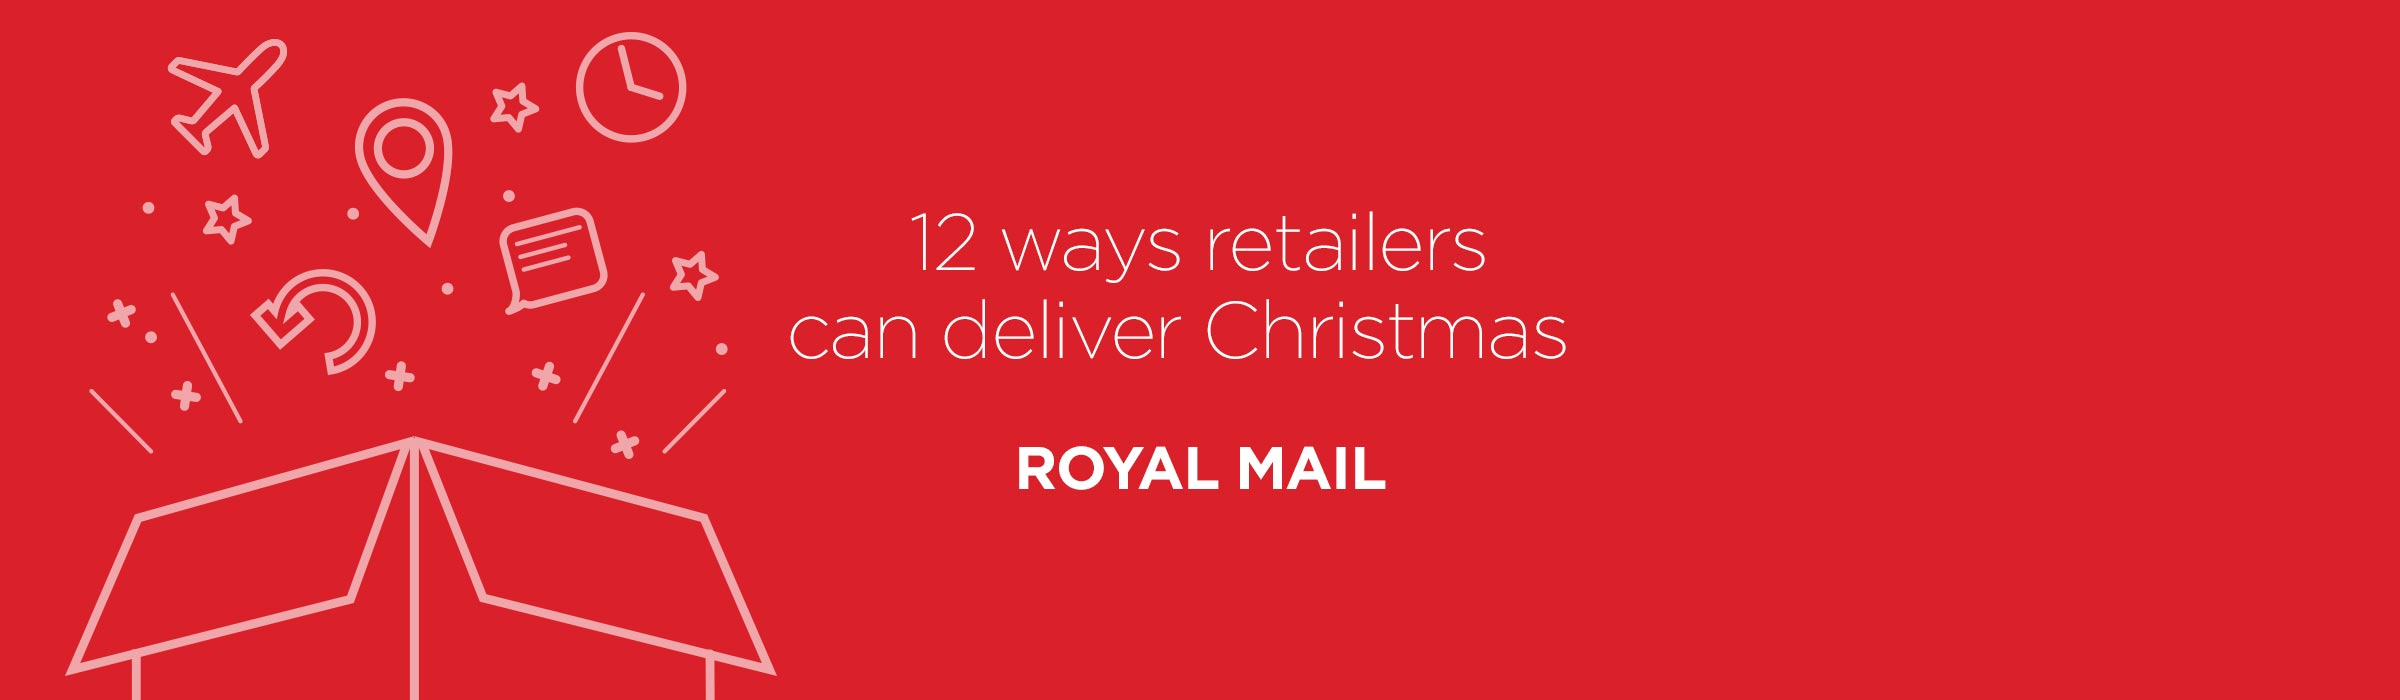 Royal Mail Advent – 12 ways retailers can deliver Christmas